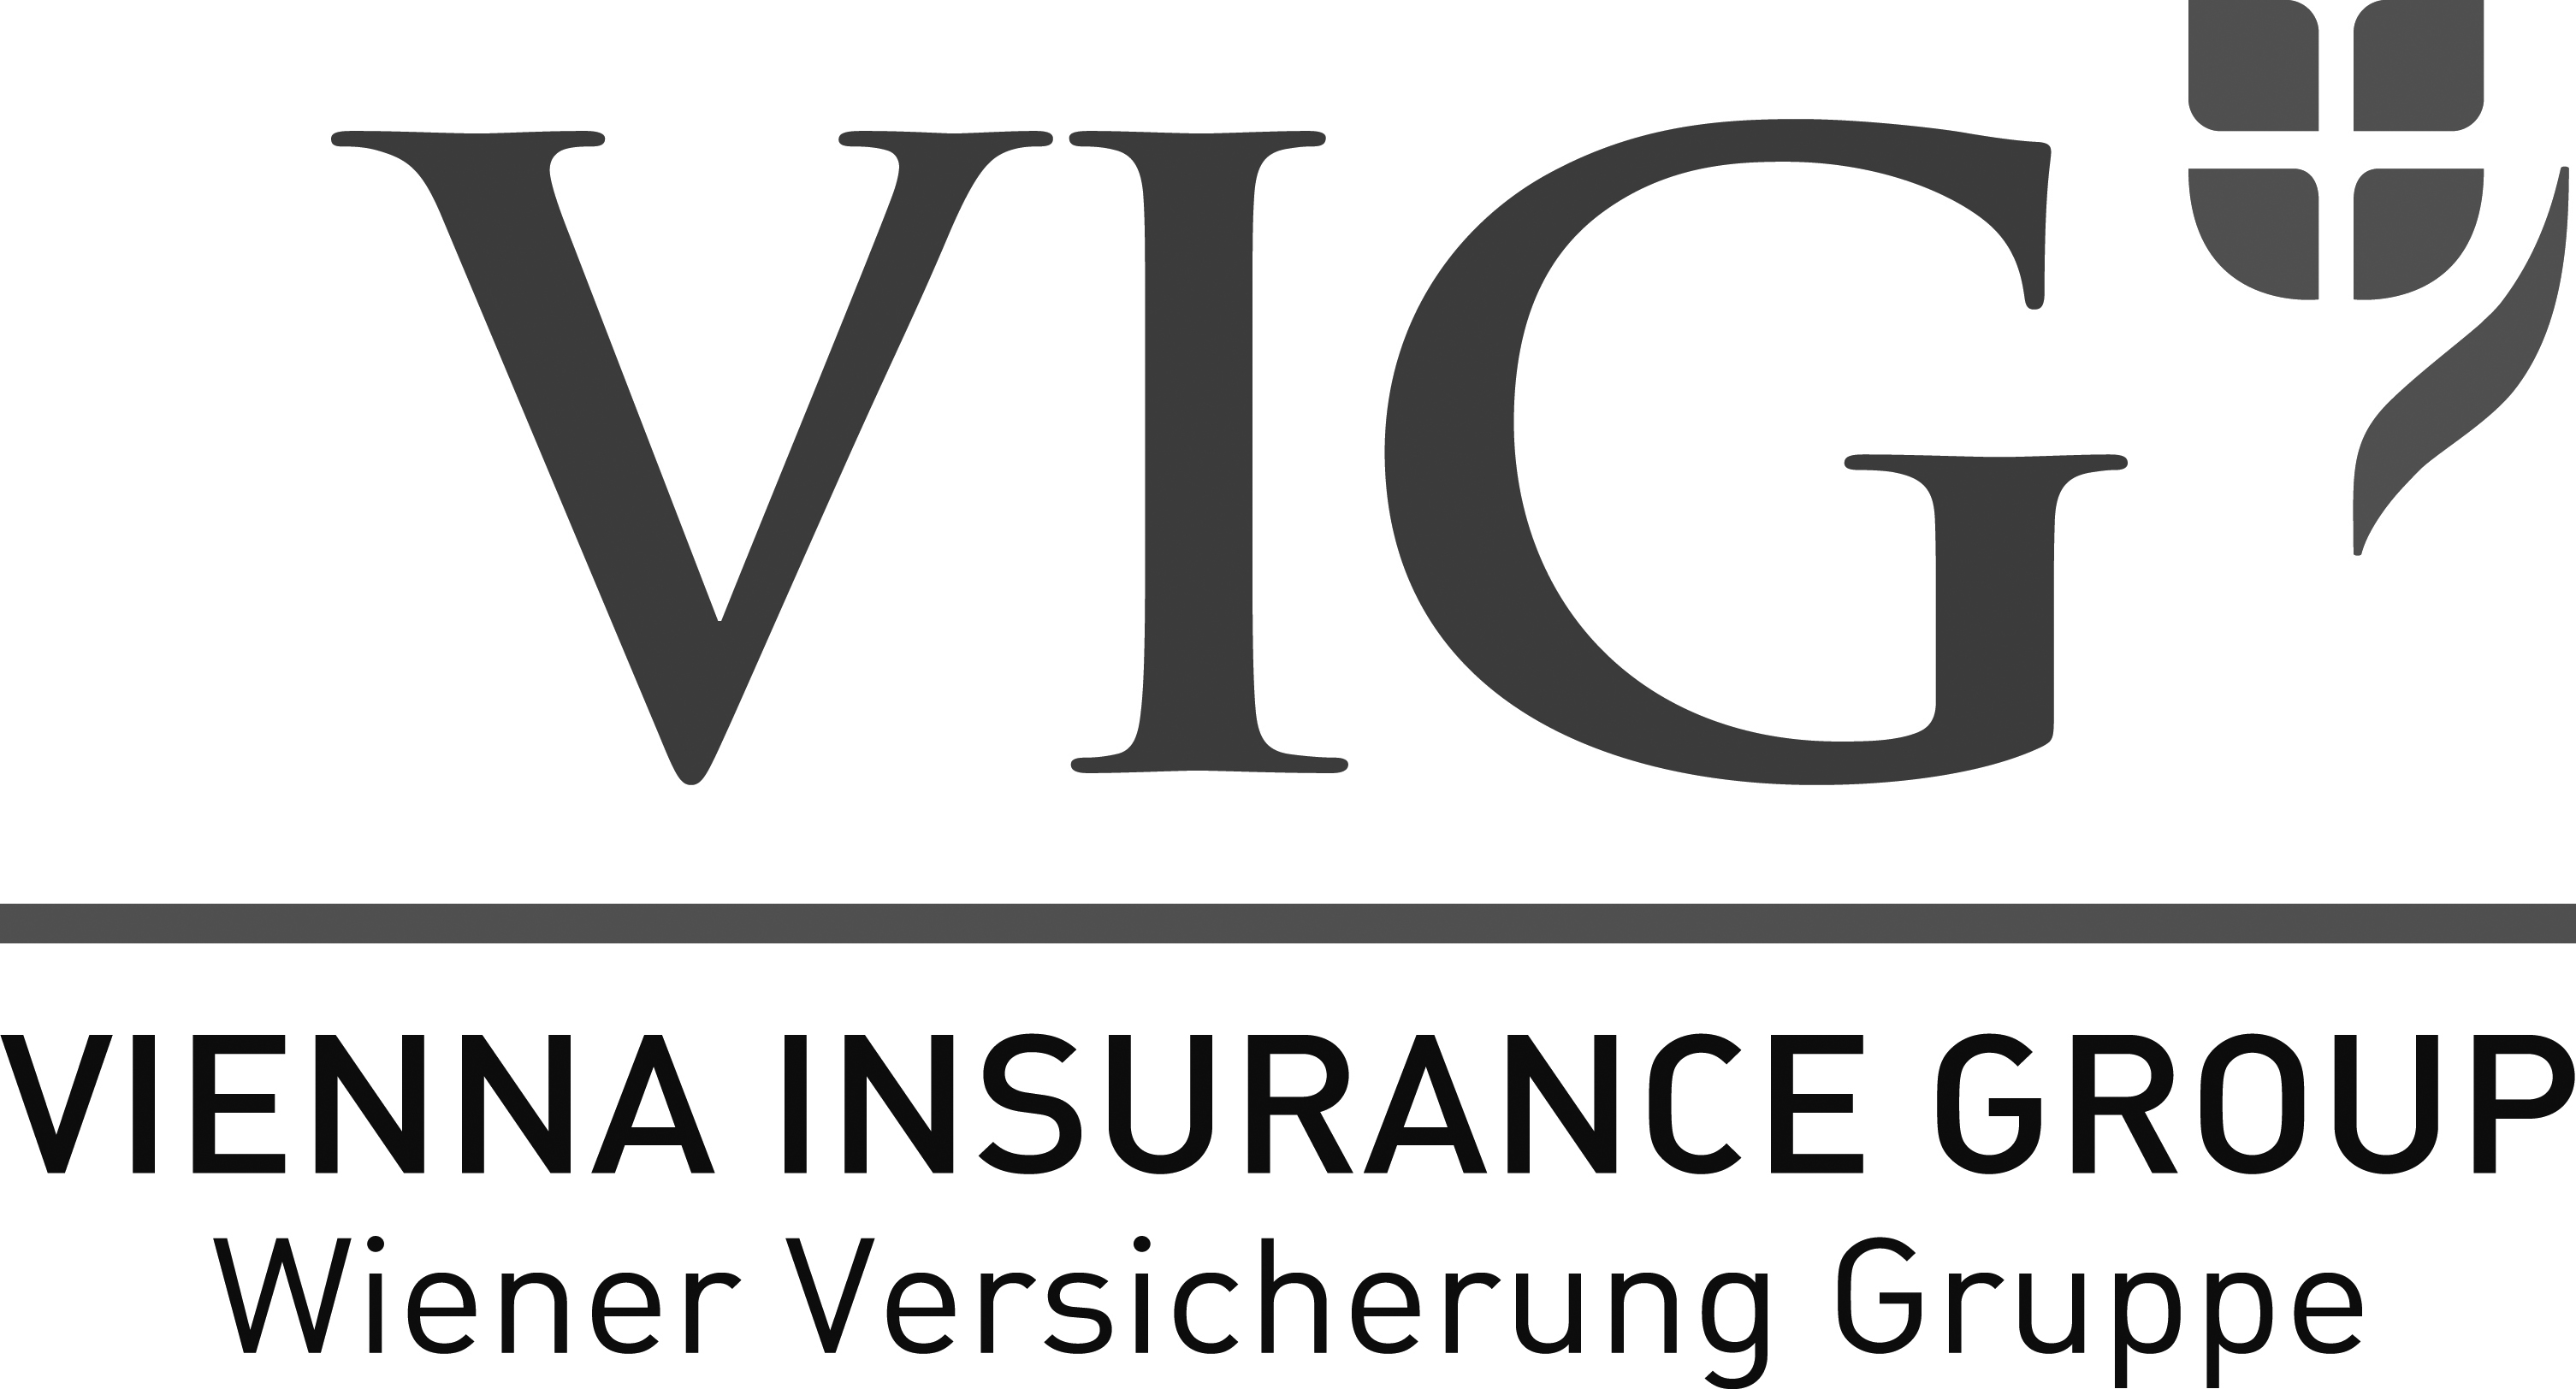 VIENNA INSURANCE GROUP AG Wiener Versicherung Gruppe